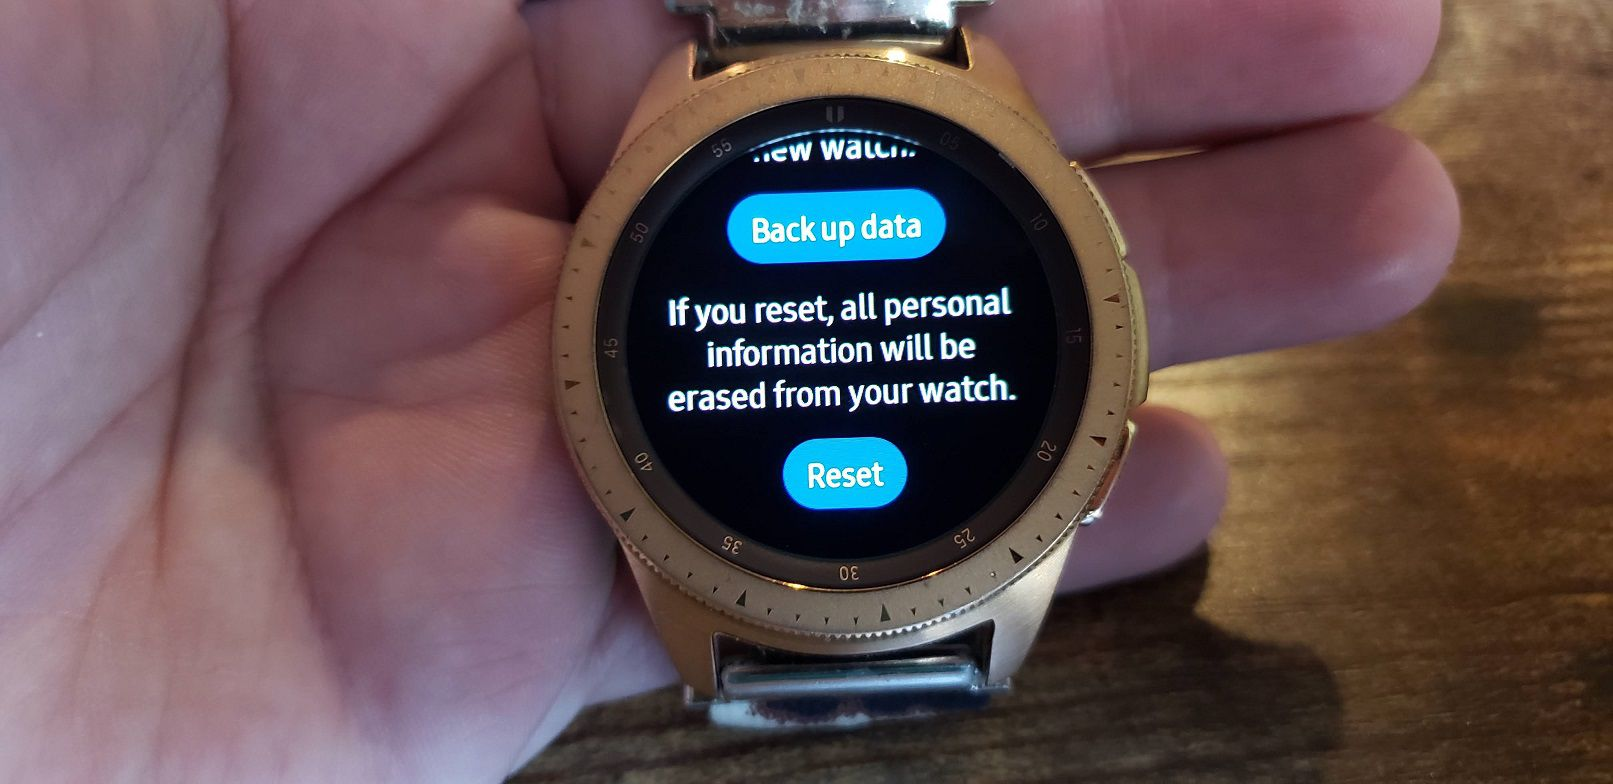 Samsung Galaxy Watch Settings Reset sub menu and confirm factory reset.